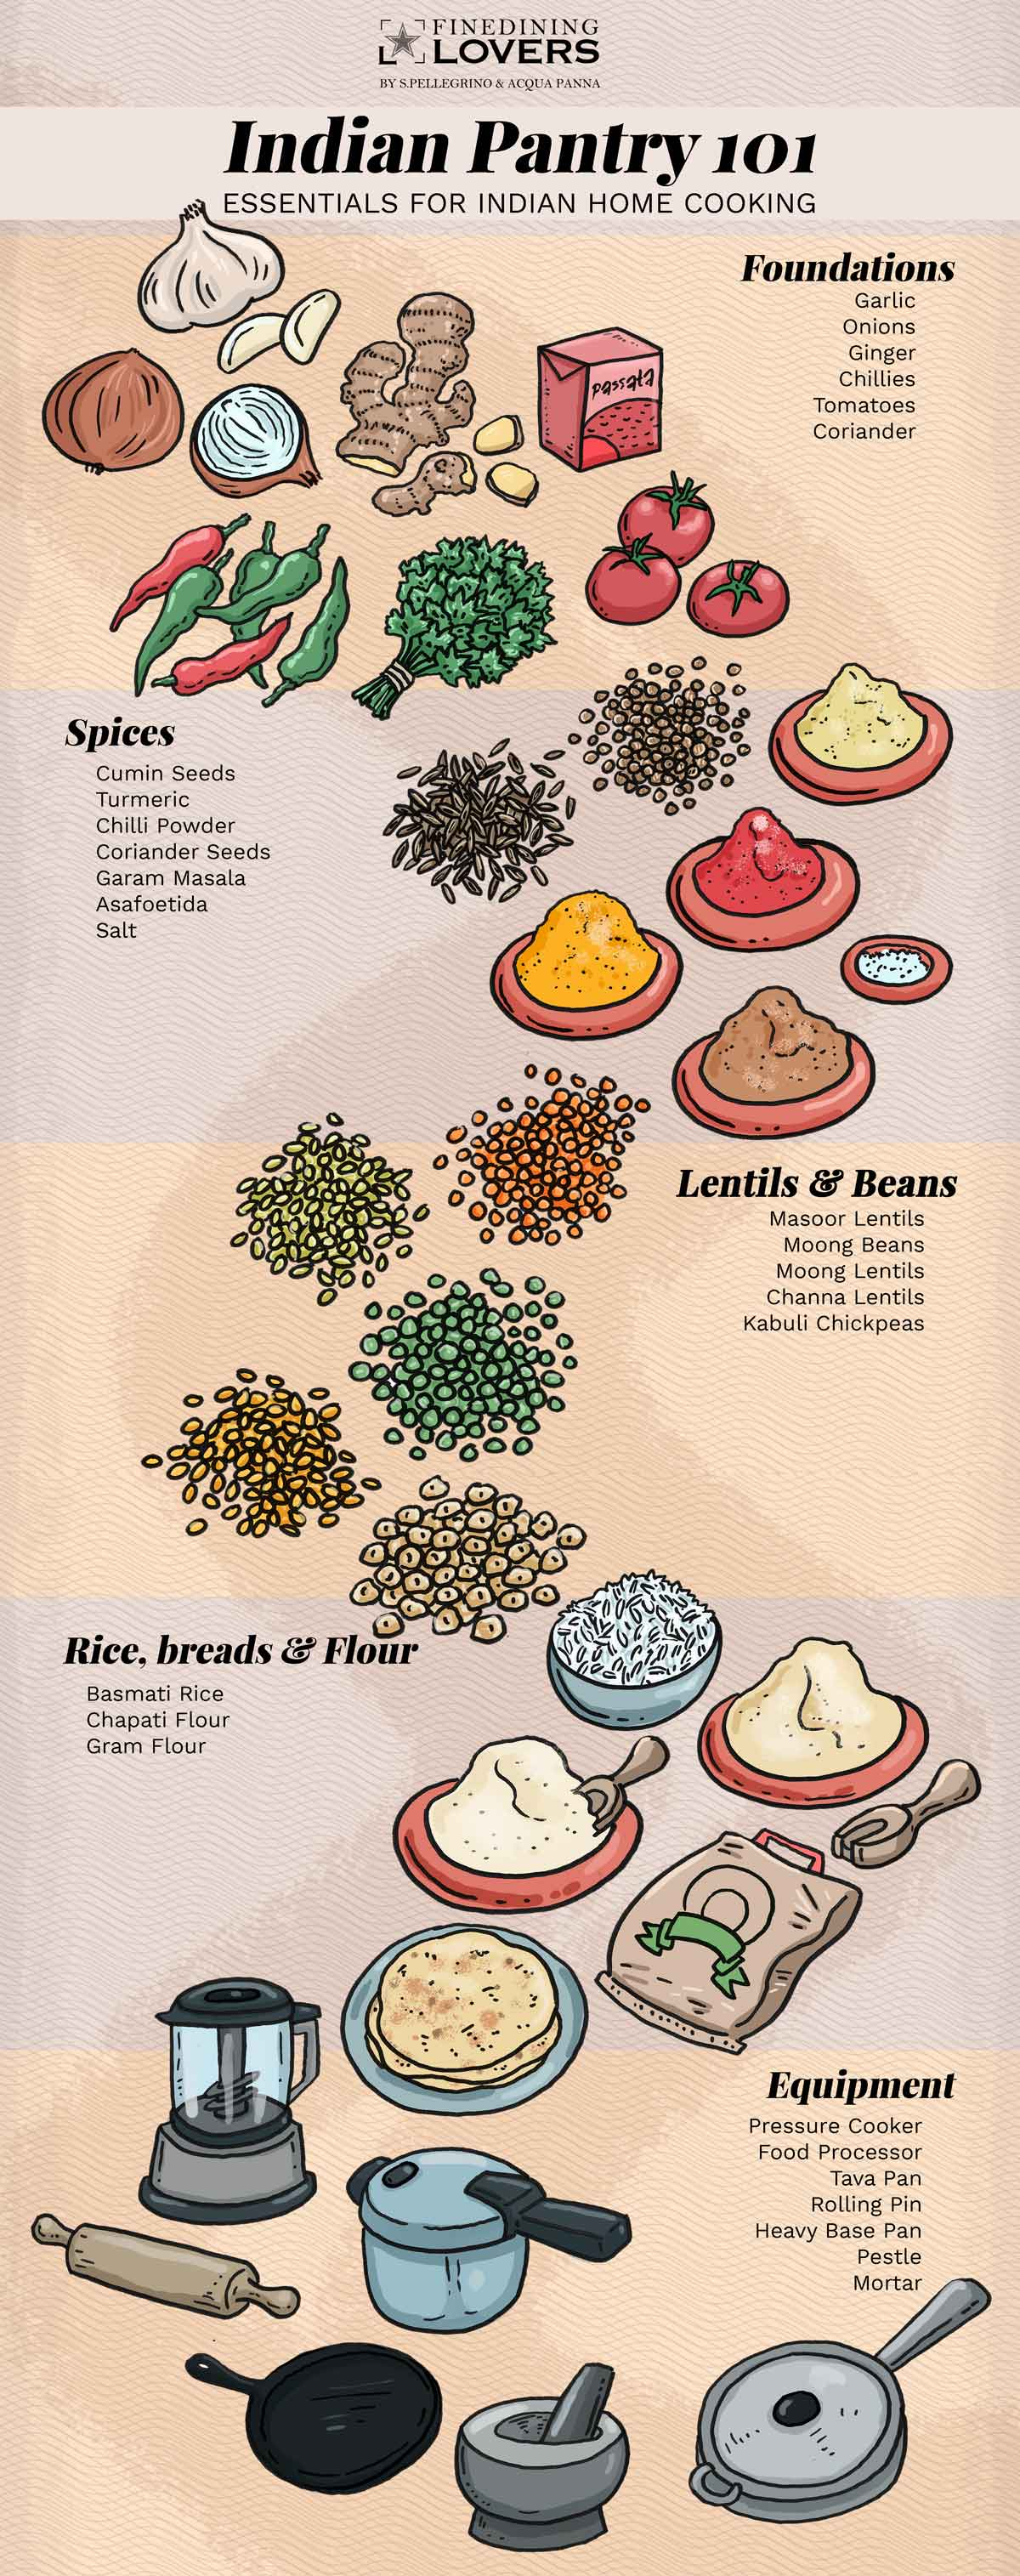 Indian Pantry illustration